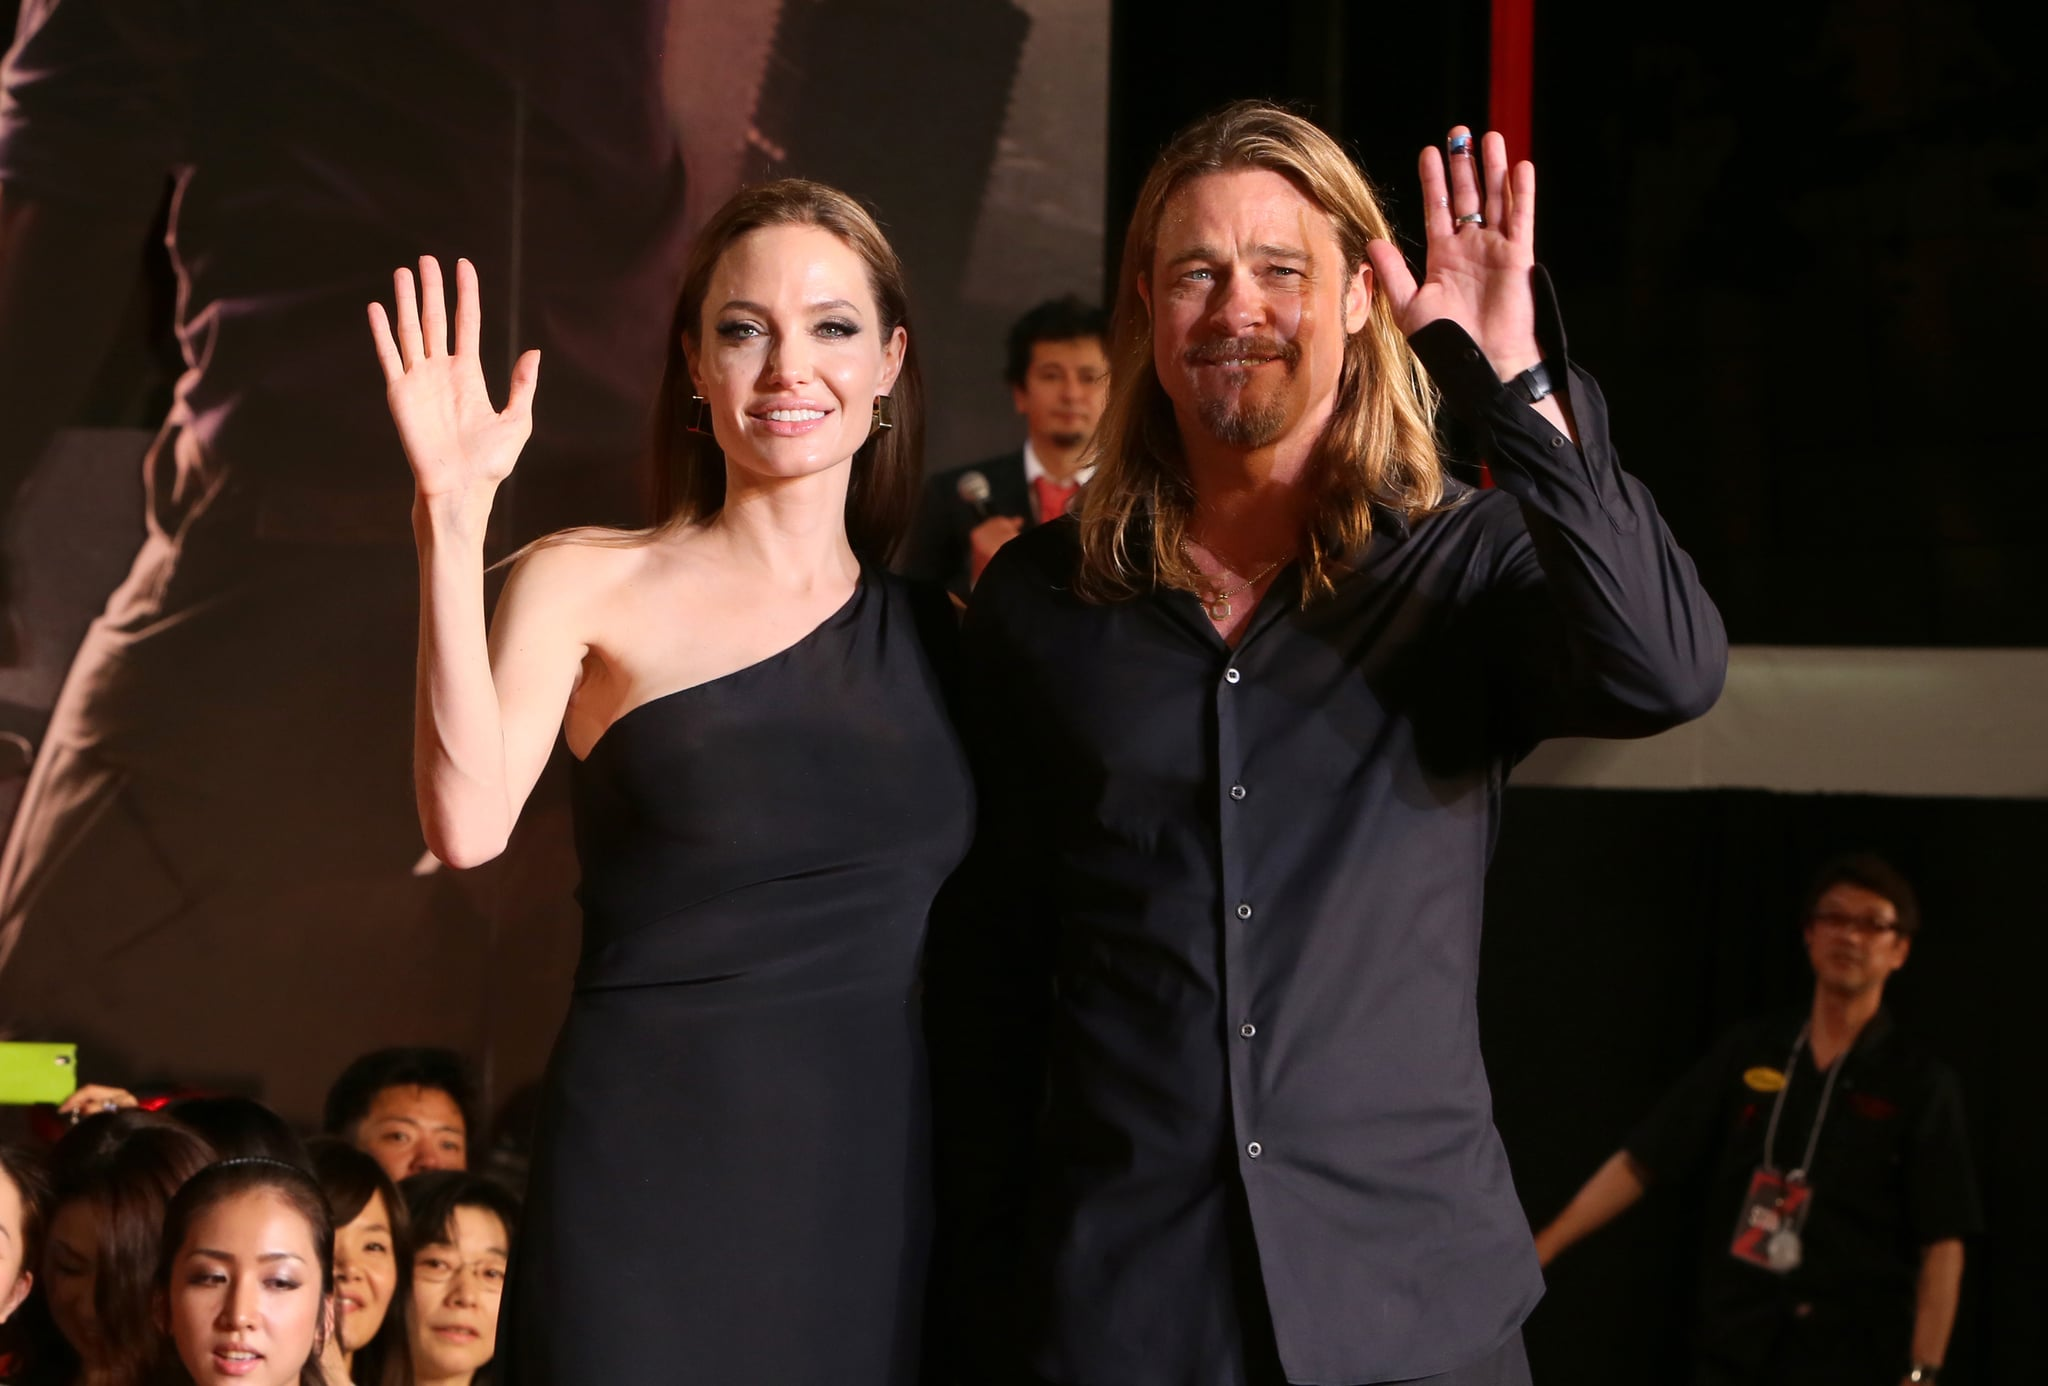 Brad Pitt and Saint Laurent-clad Angelina Jolie gave a wave to the crowd during the premiere of World War Z in Tokyo.